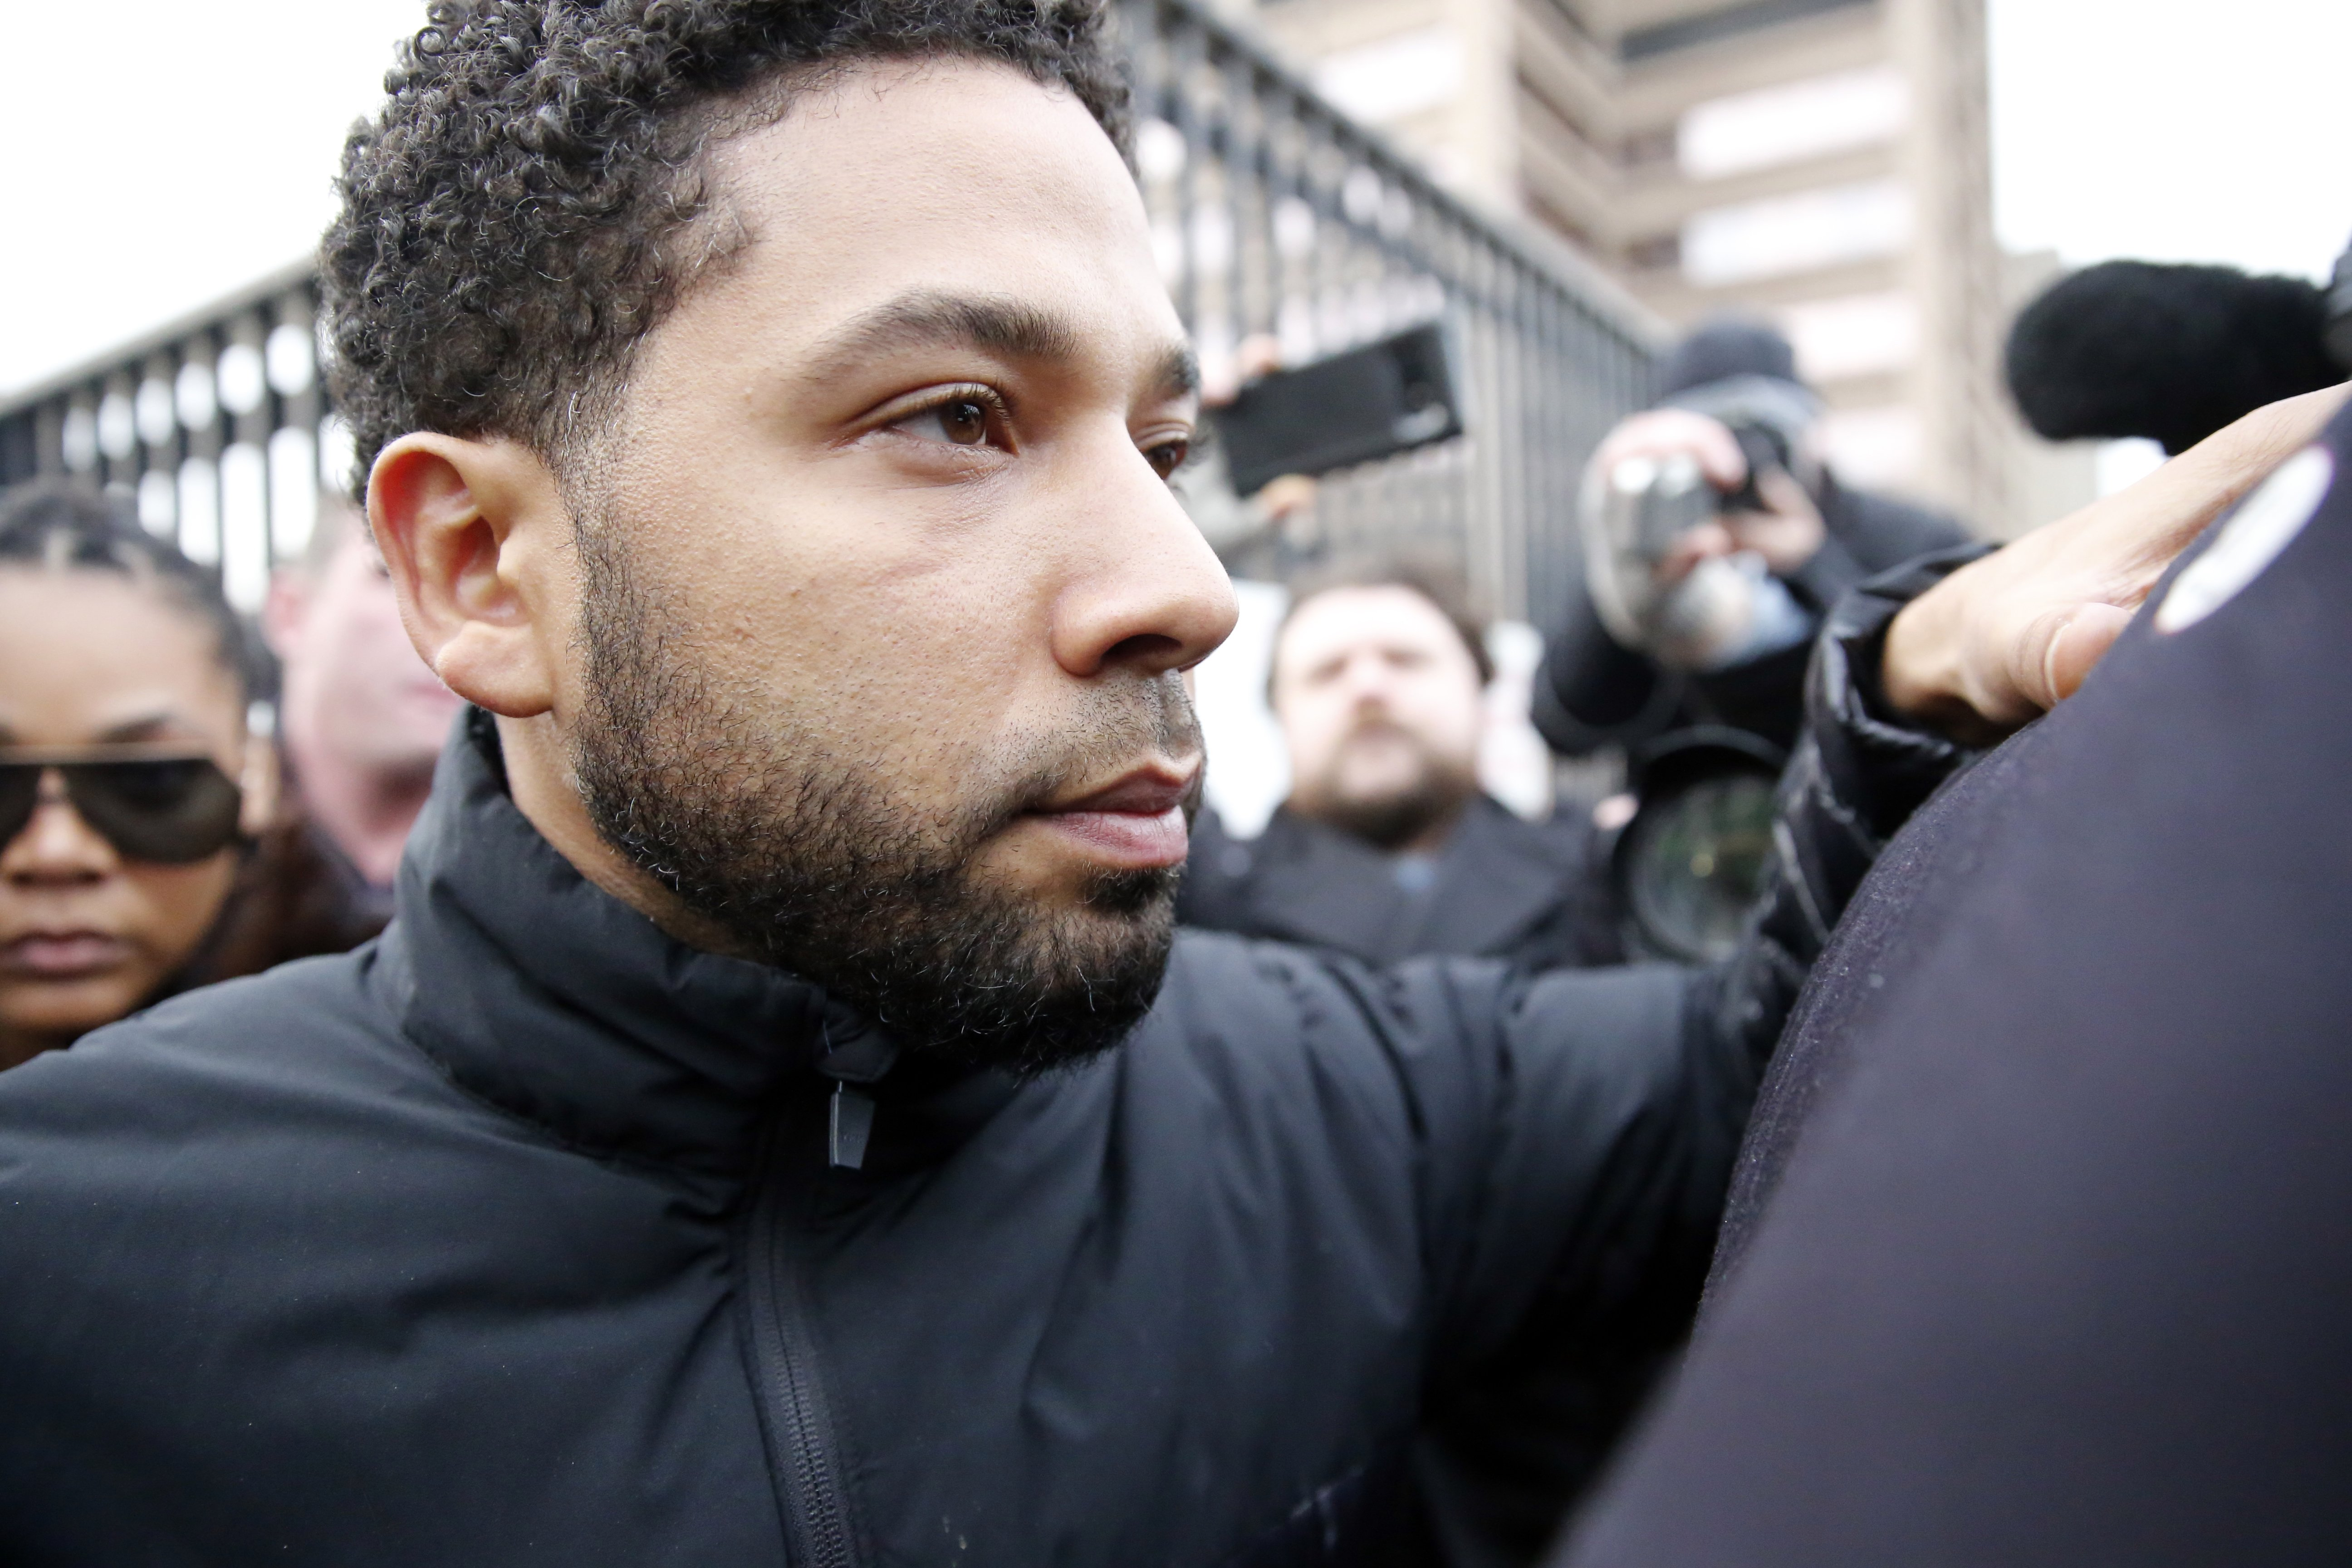 """Empire"" star Jussie Smollett leaving Cook County jail after posting bail in February 2019. 